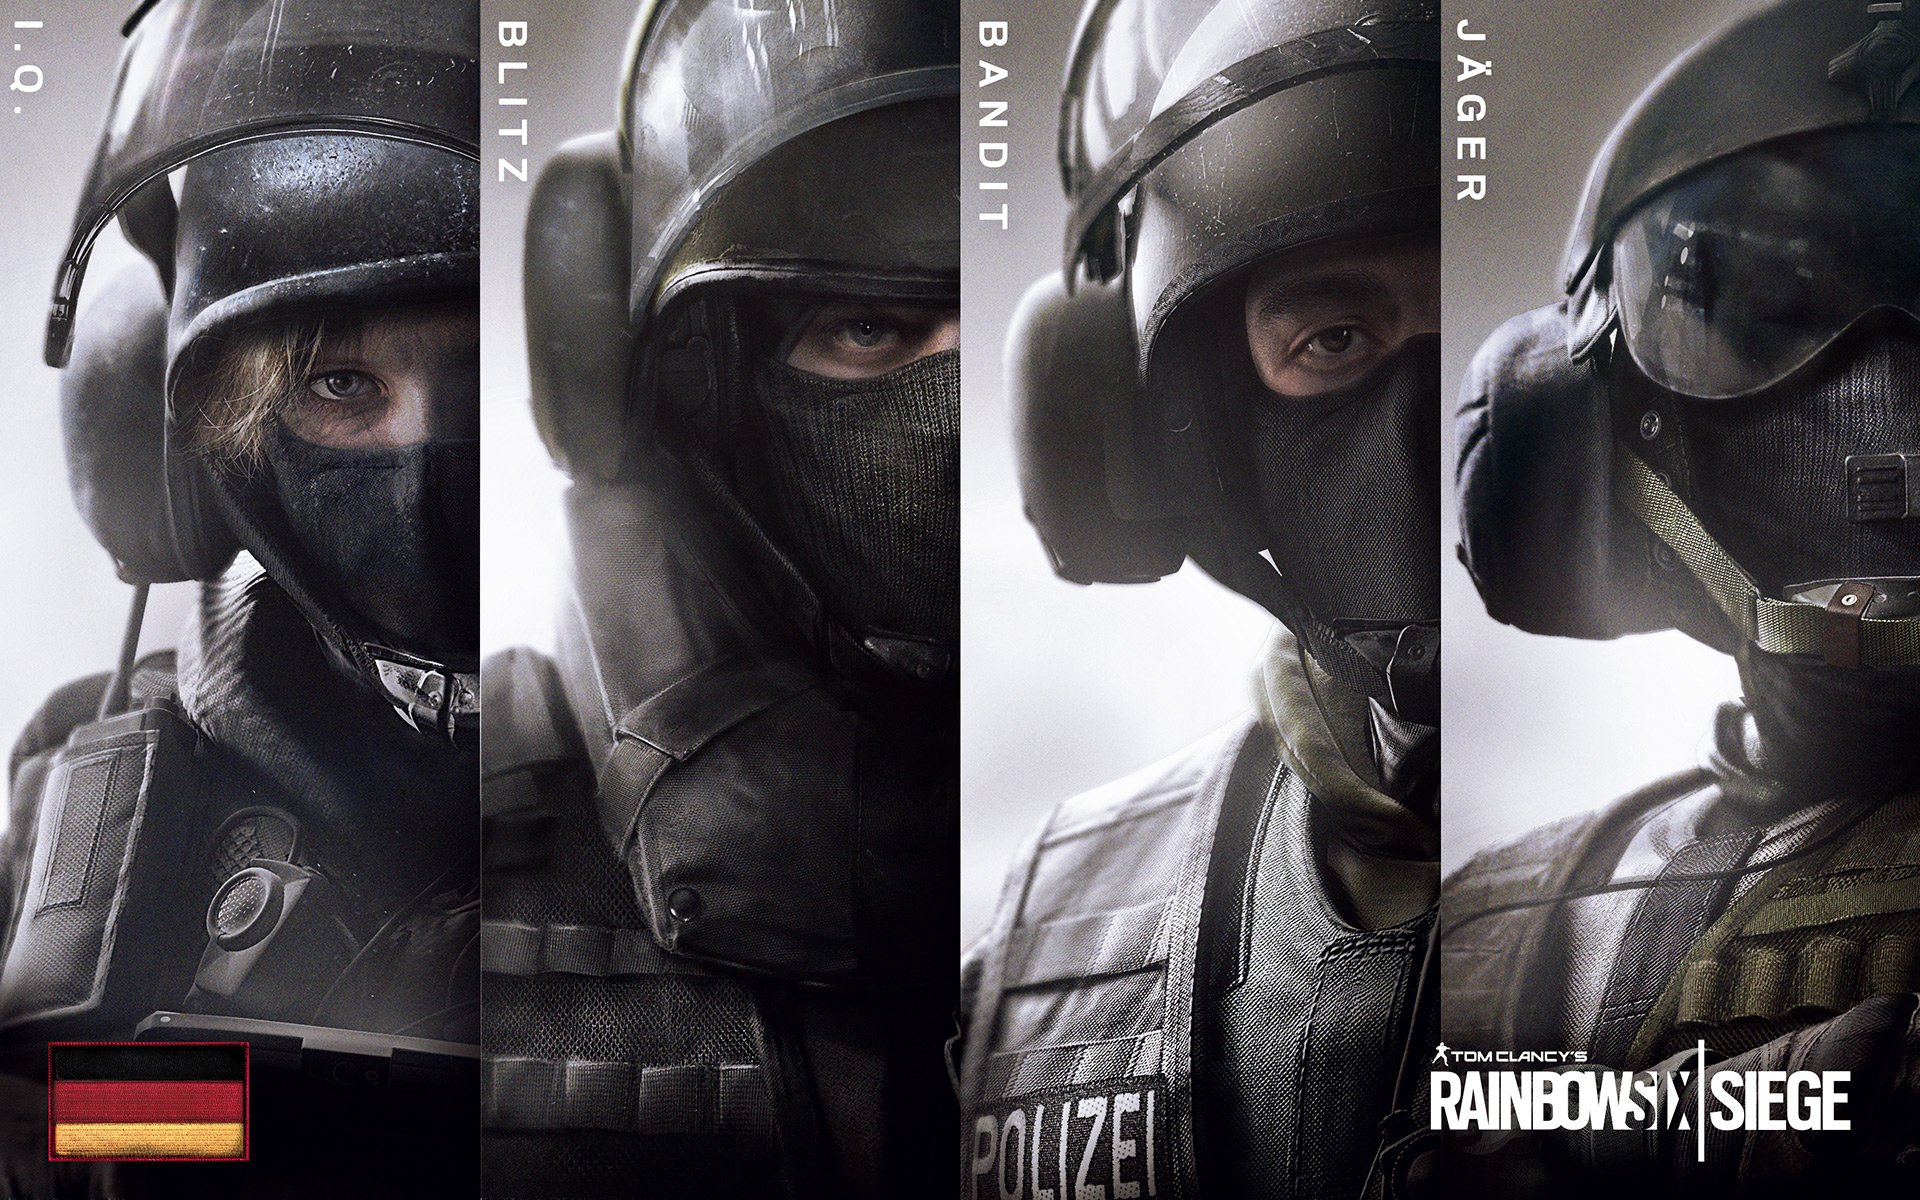 Rainbow Six Siege German Hd Wallpaper Background Image